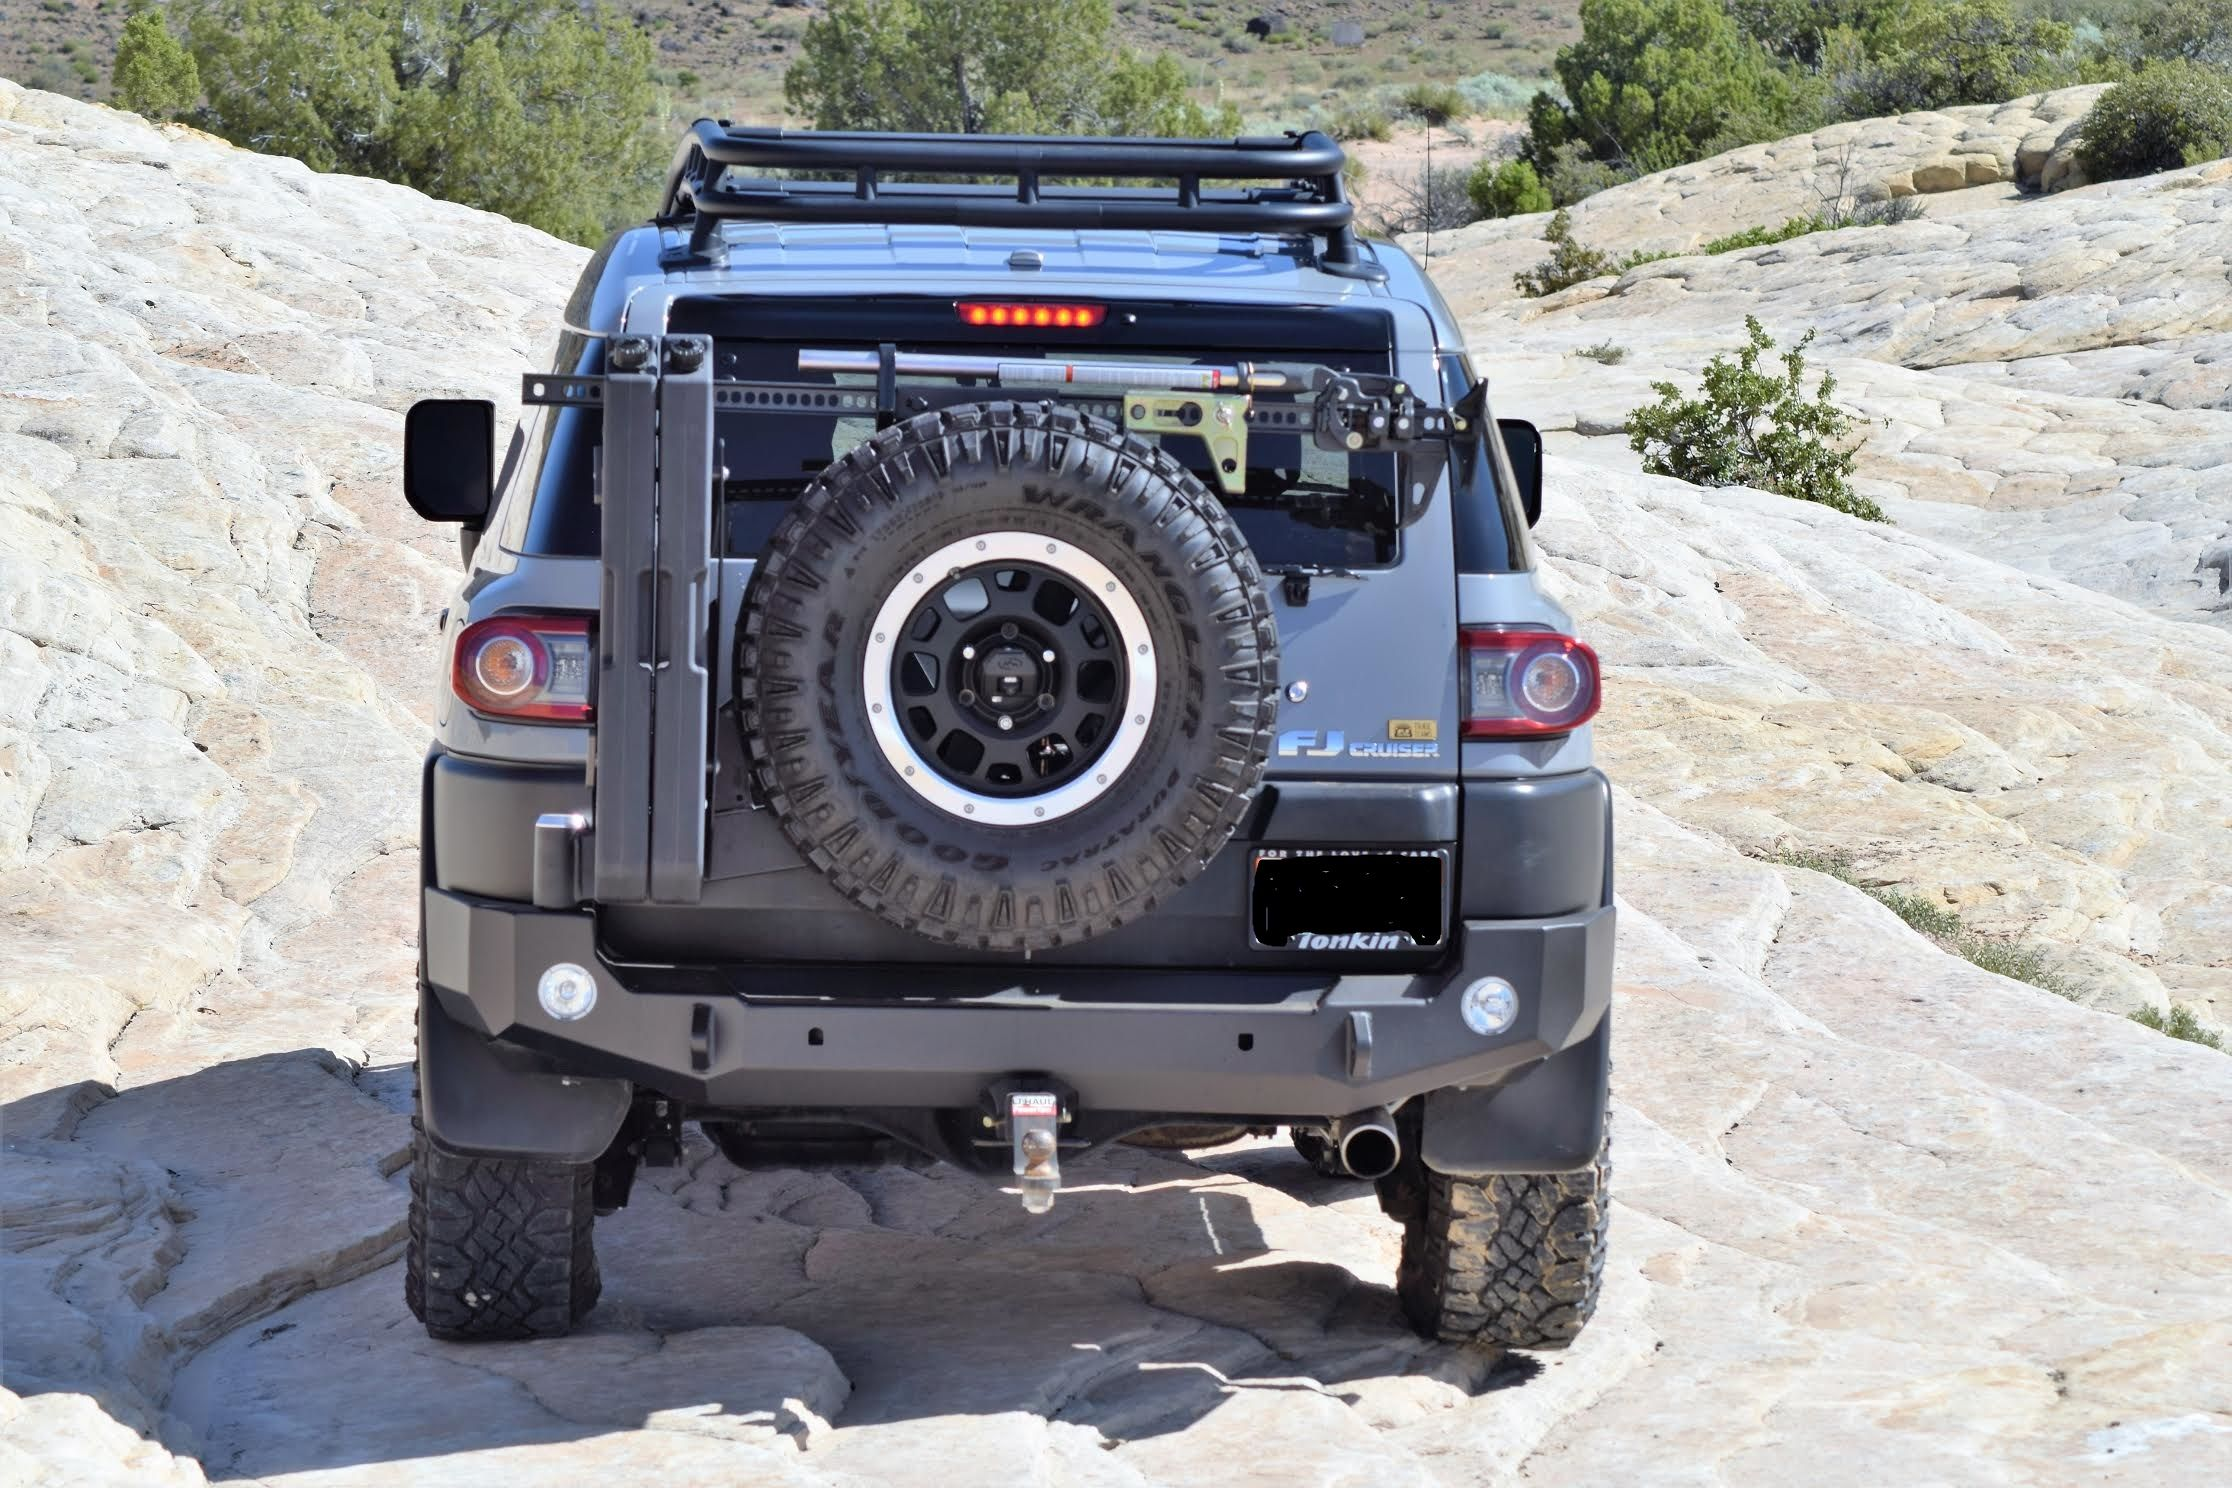 Expedition One Fjc With Smooth Tire Carrier Hi Lift Jack Mount On Jeep Wrangler Water Geri Cans